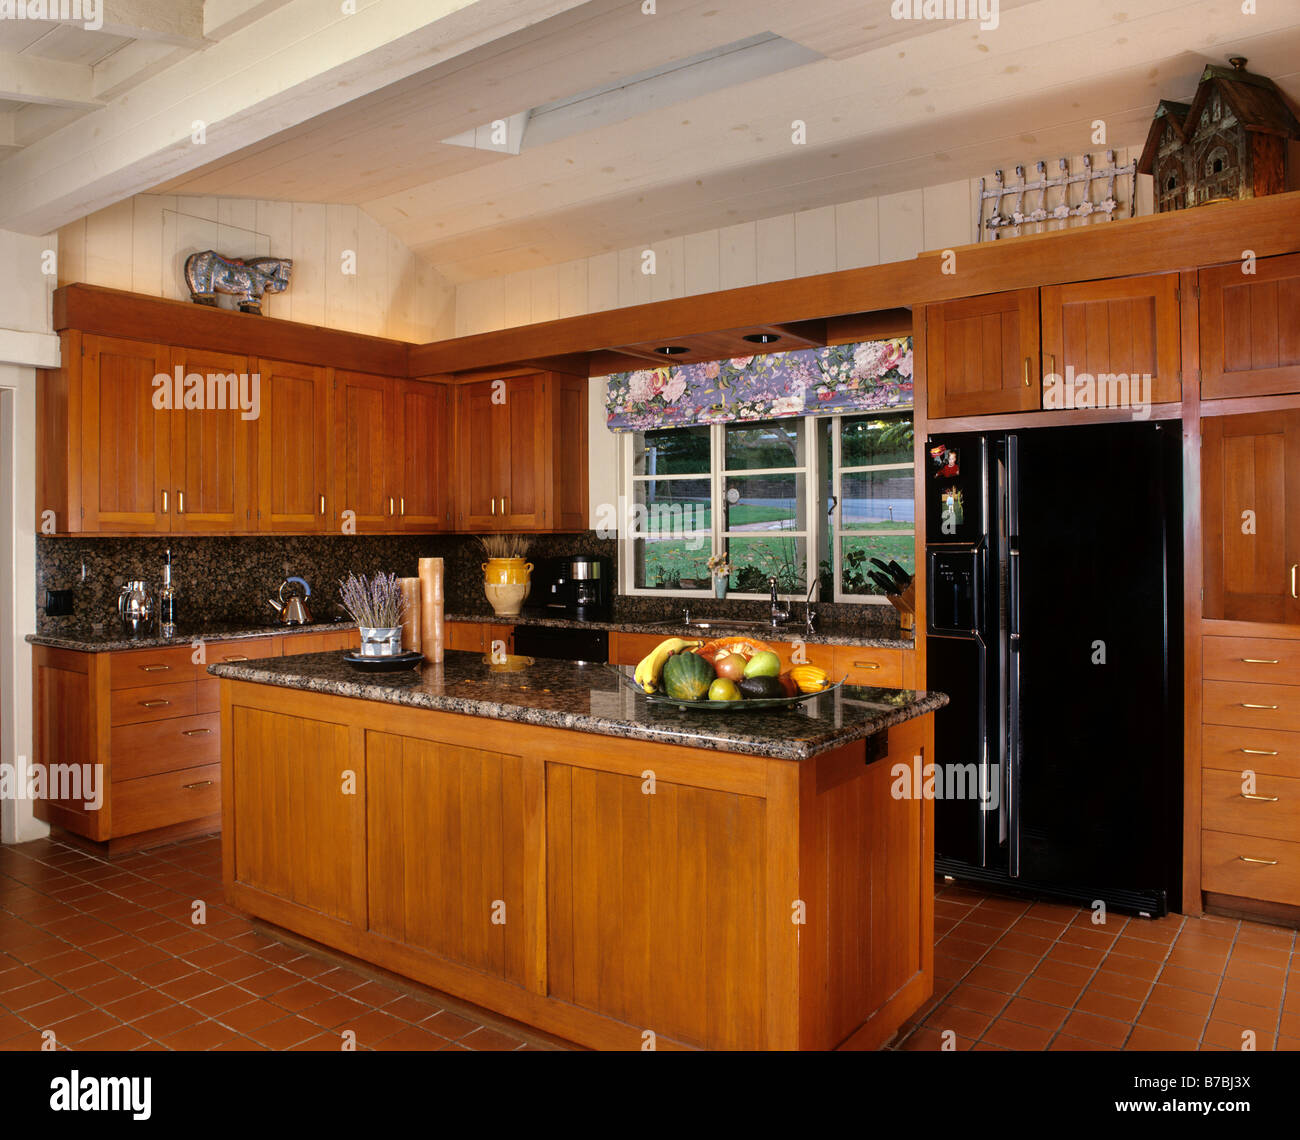 A modern KITCHEN with custom wood cabinets marble counter tops and a black refredgerator Stock Photo